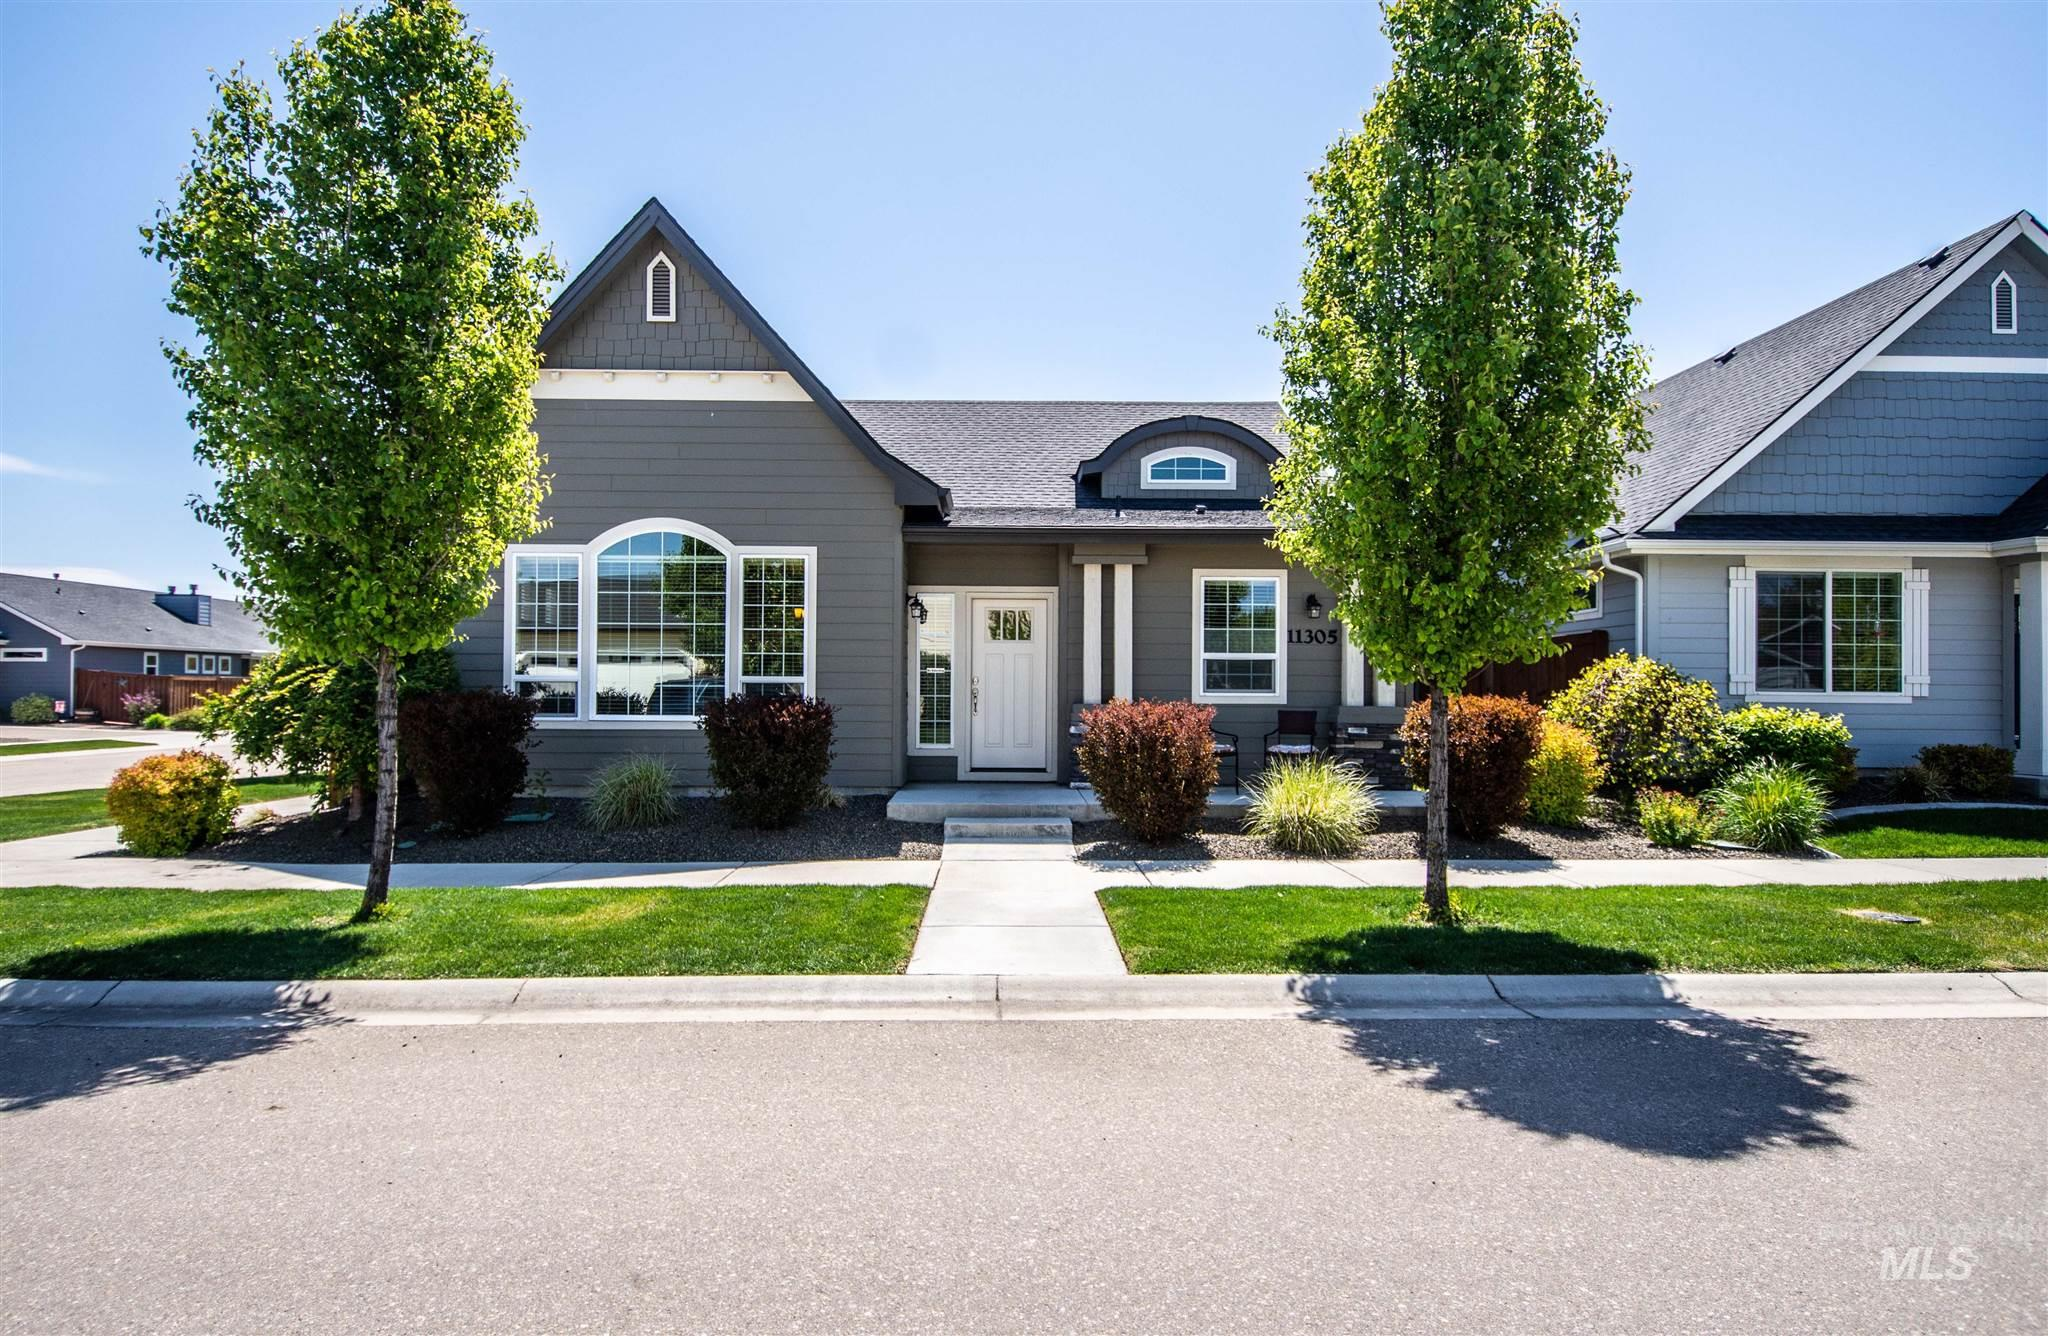 11305 W Morela Dr Property Photo - Boise, ID real estate listing